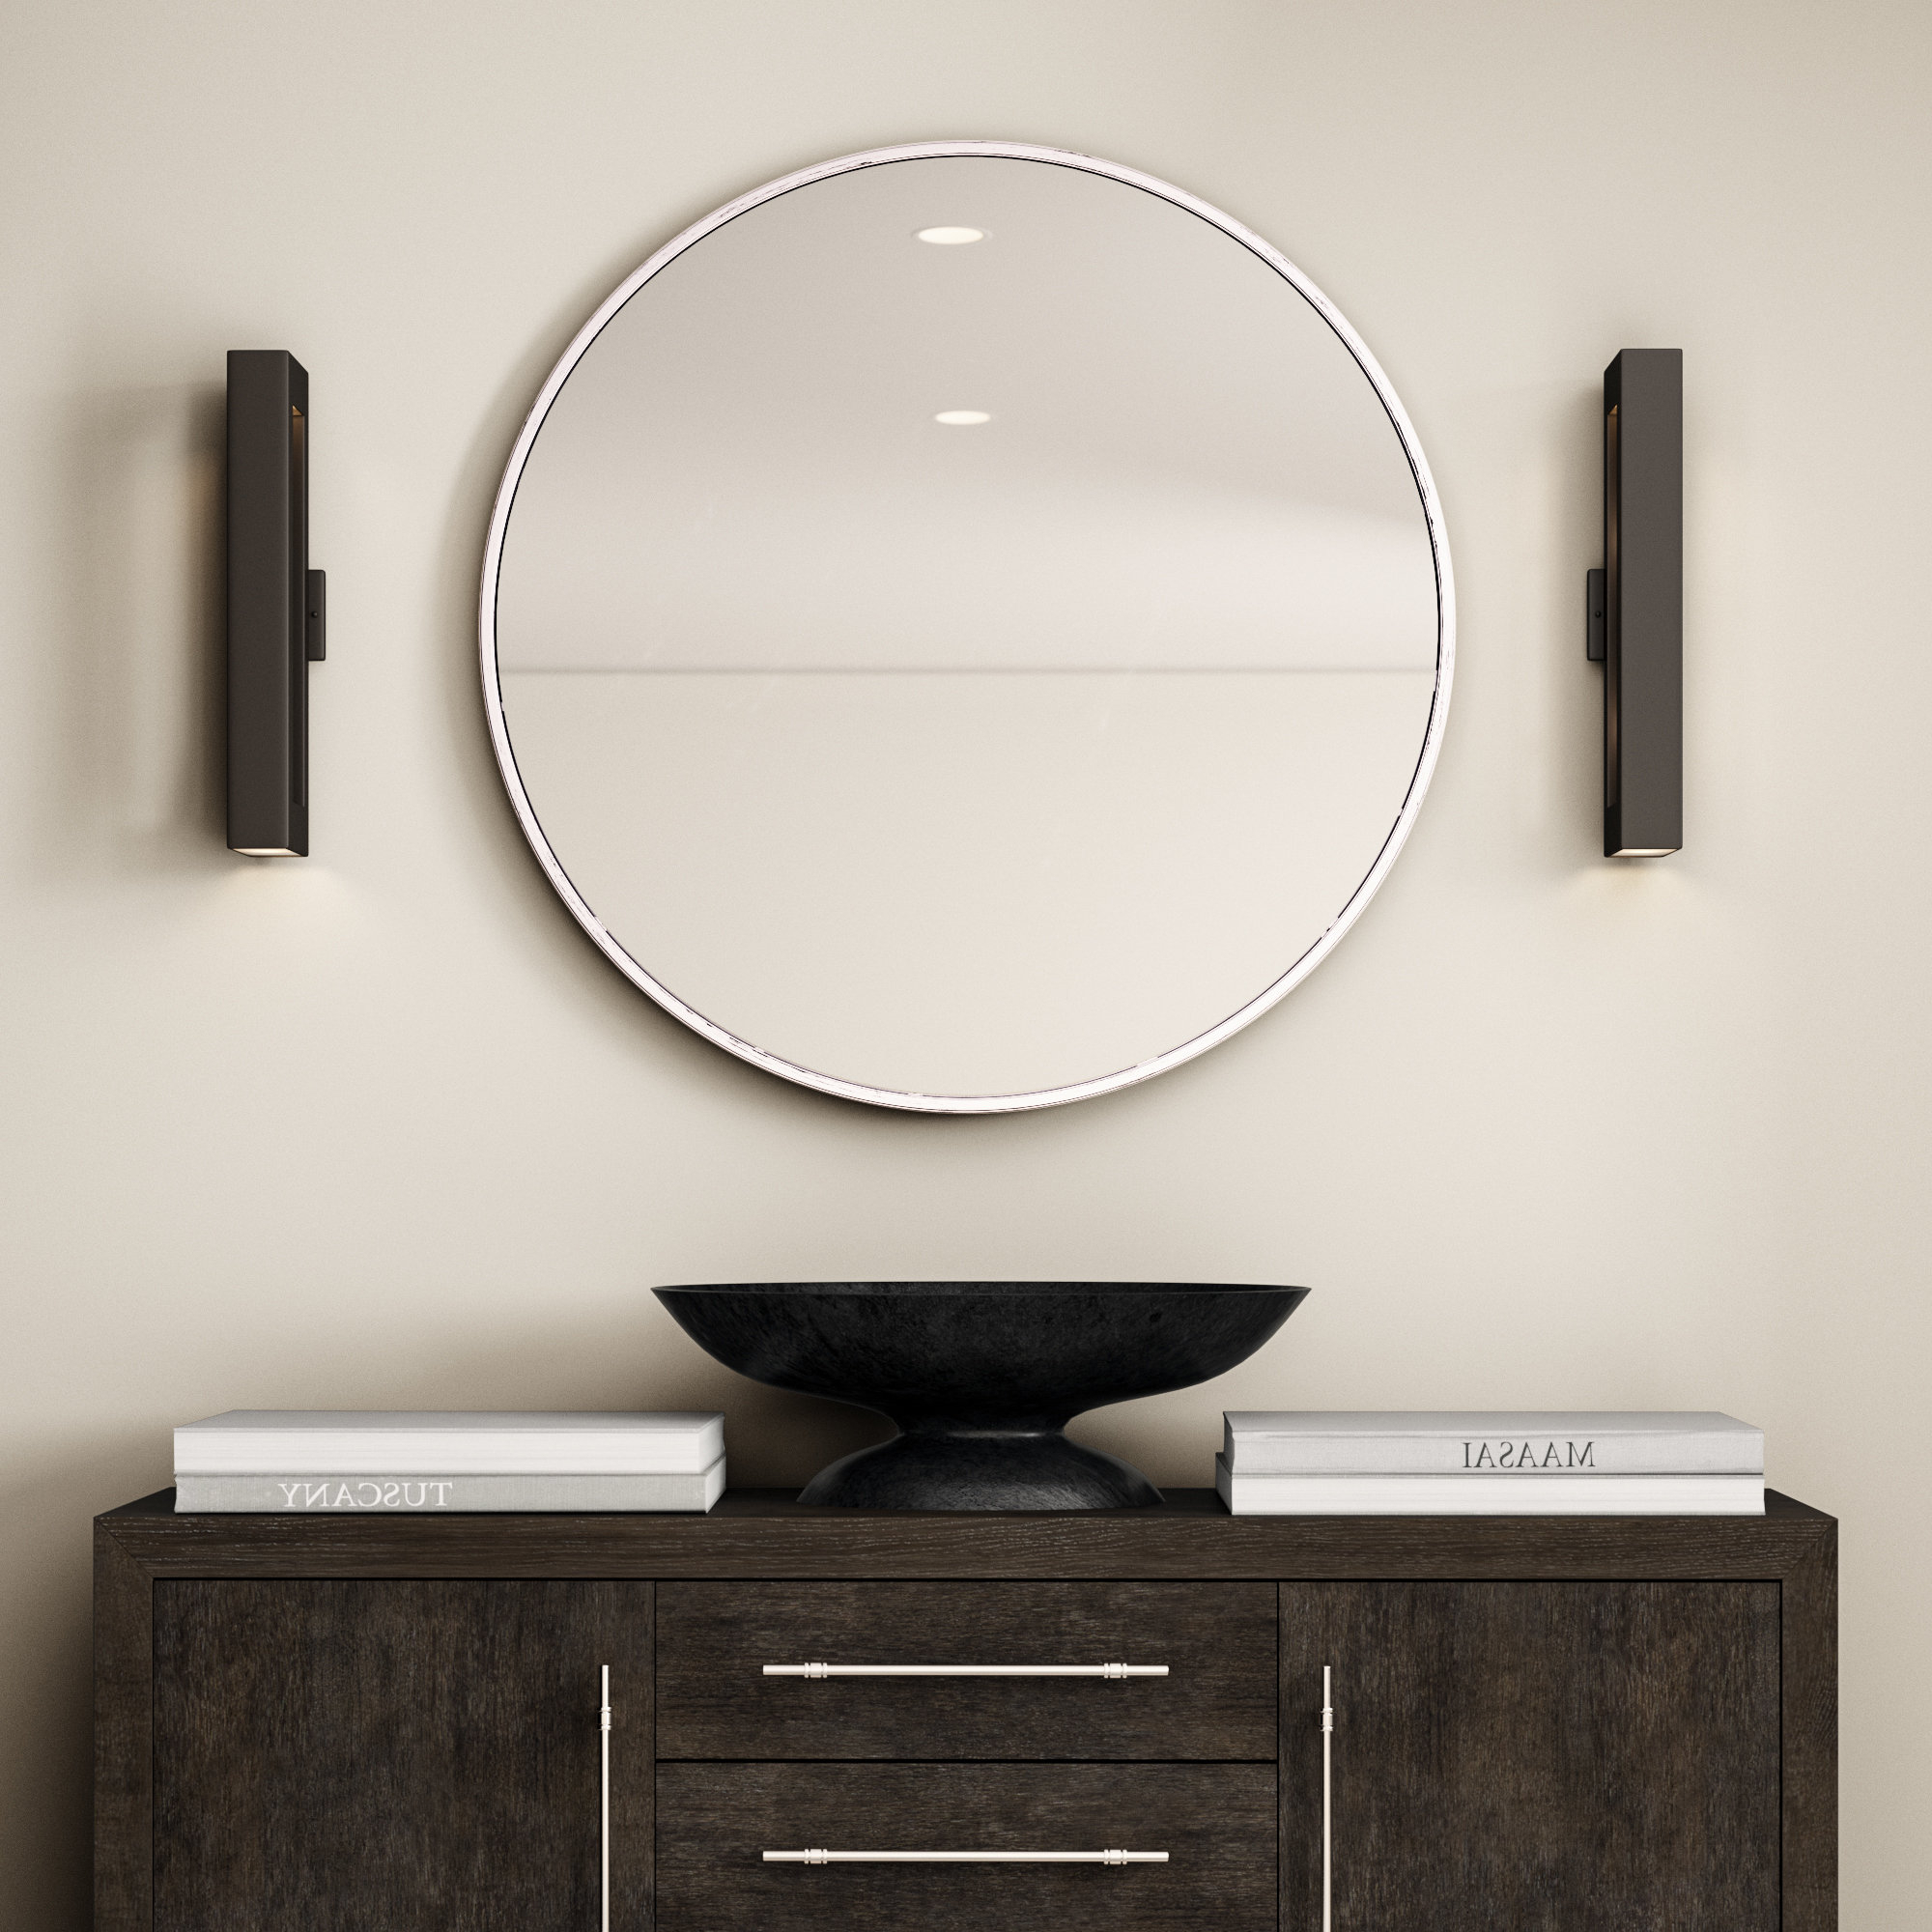 Preferred Needville Modern & Contemporary Beveled Accent Mirror Pertaining To Needville Modern & Contemporary Accent Mirrors (Gallery 4 of 20)